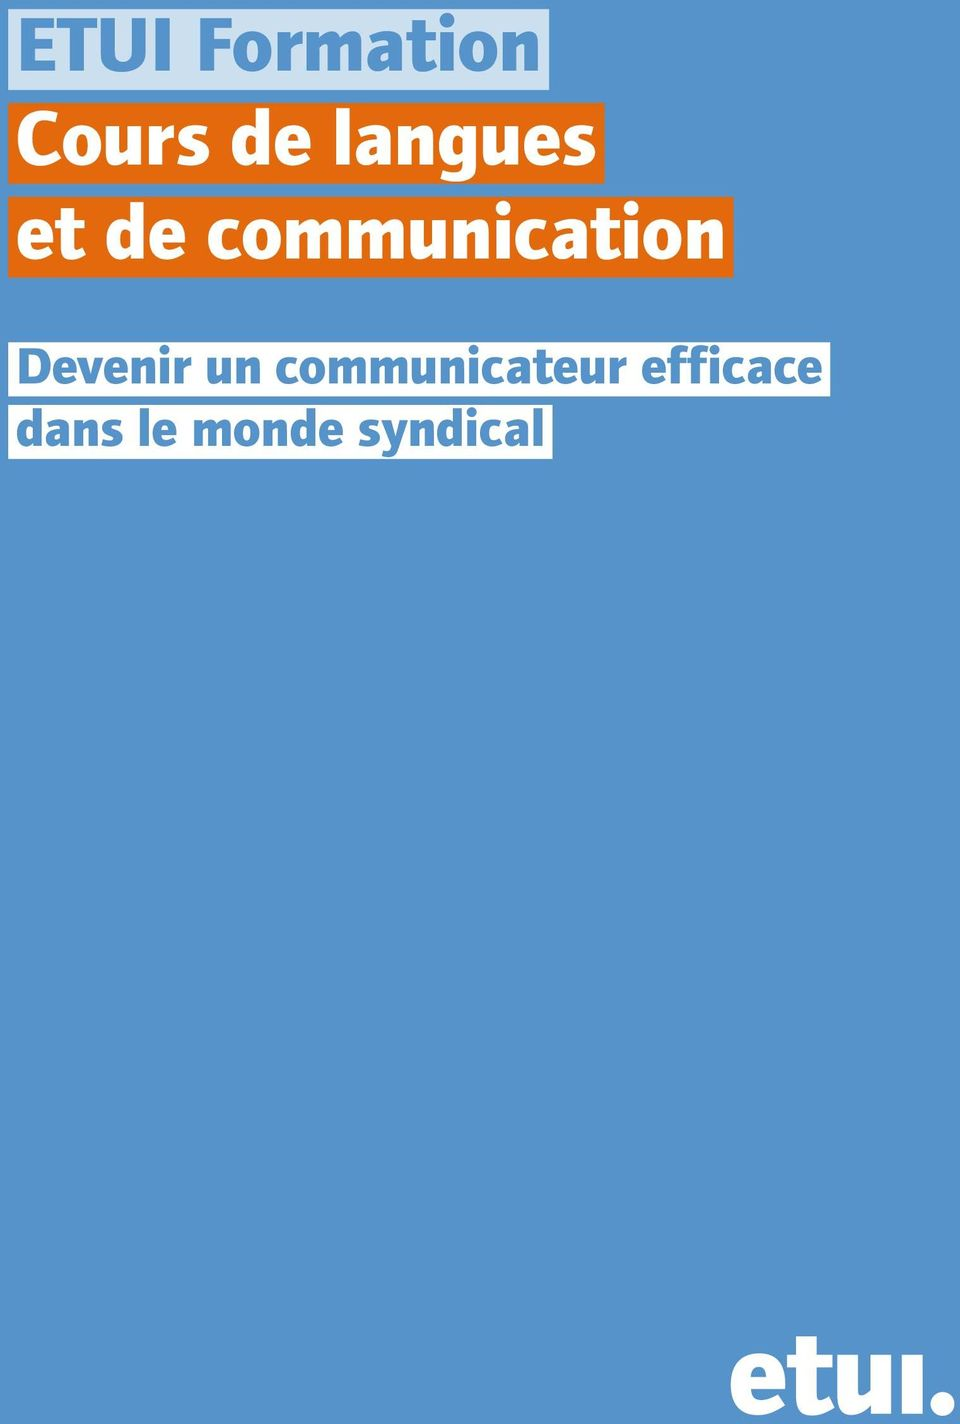 communication Devenir un